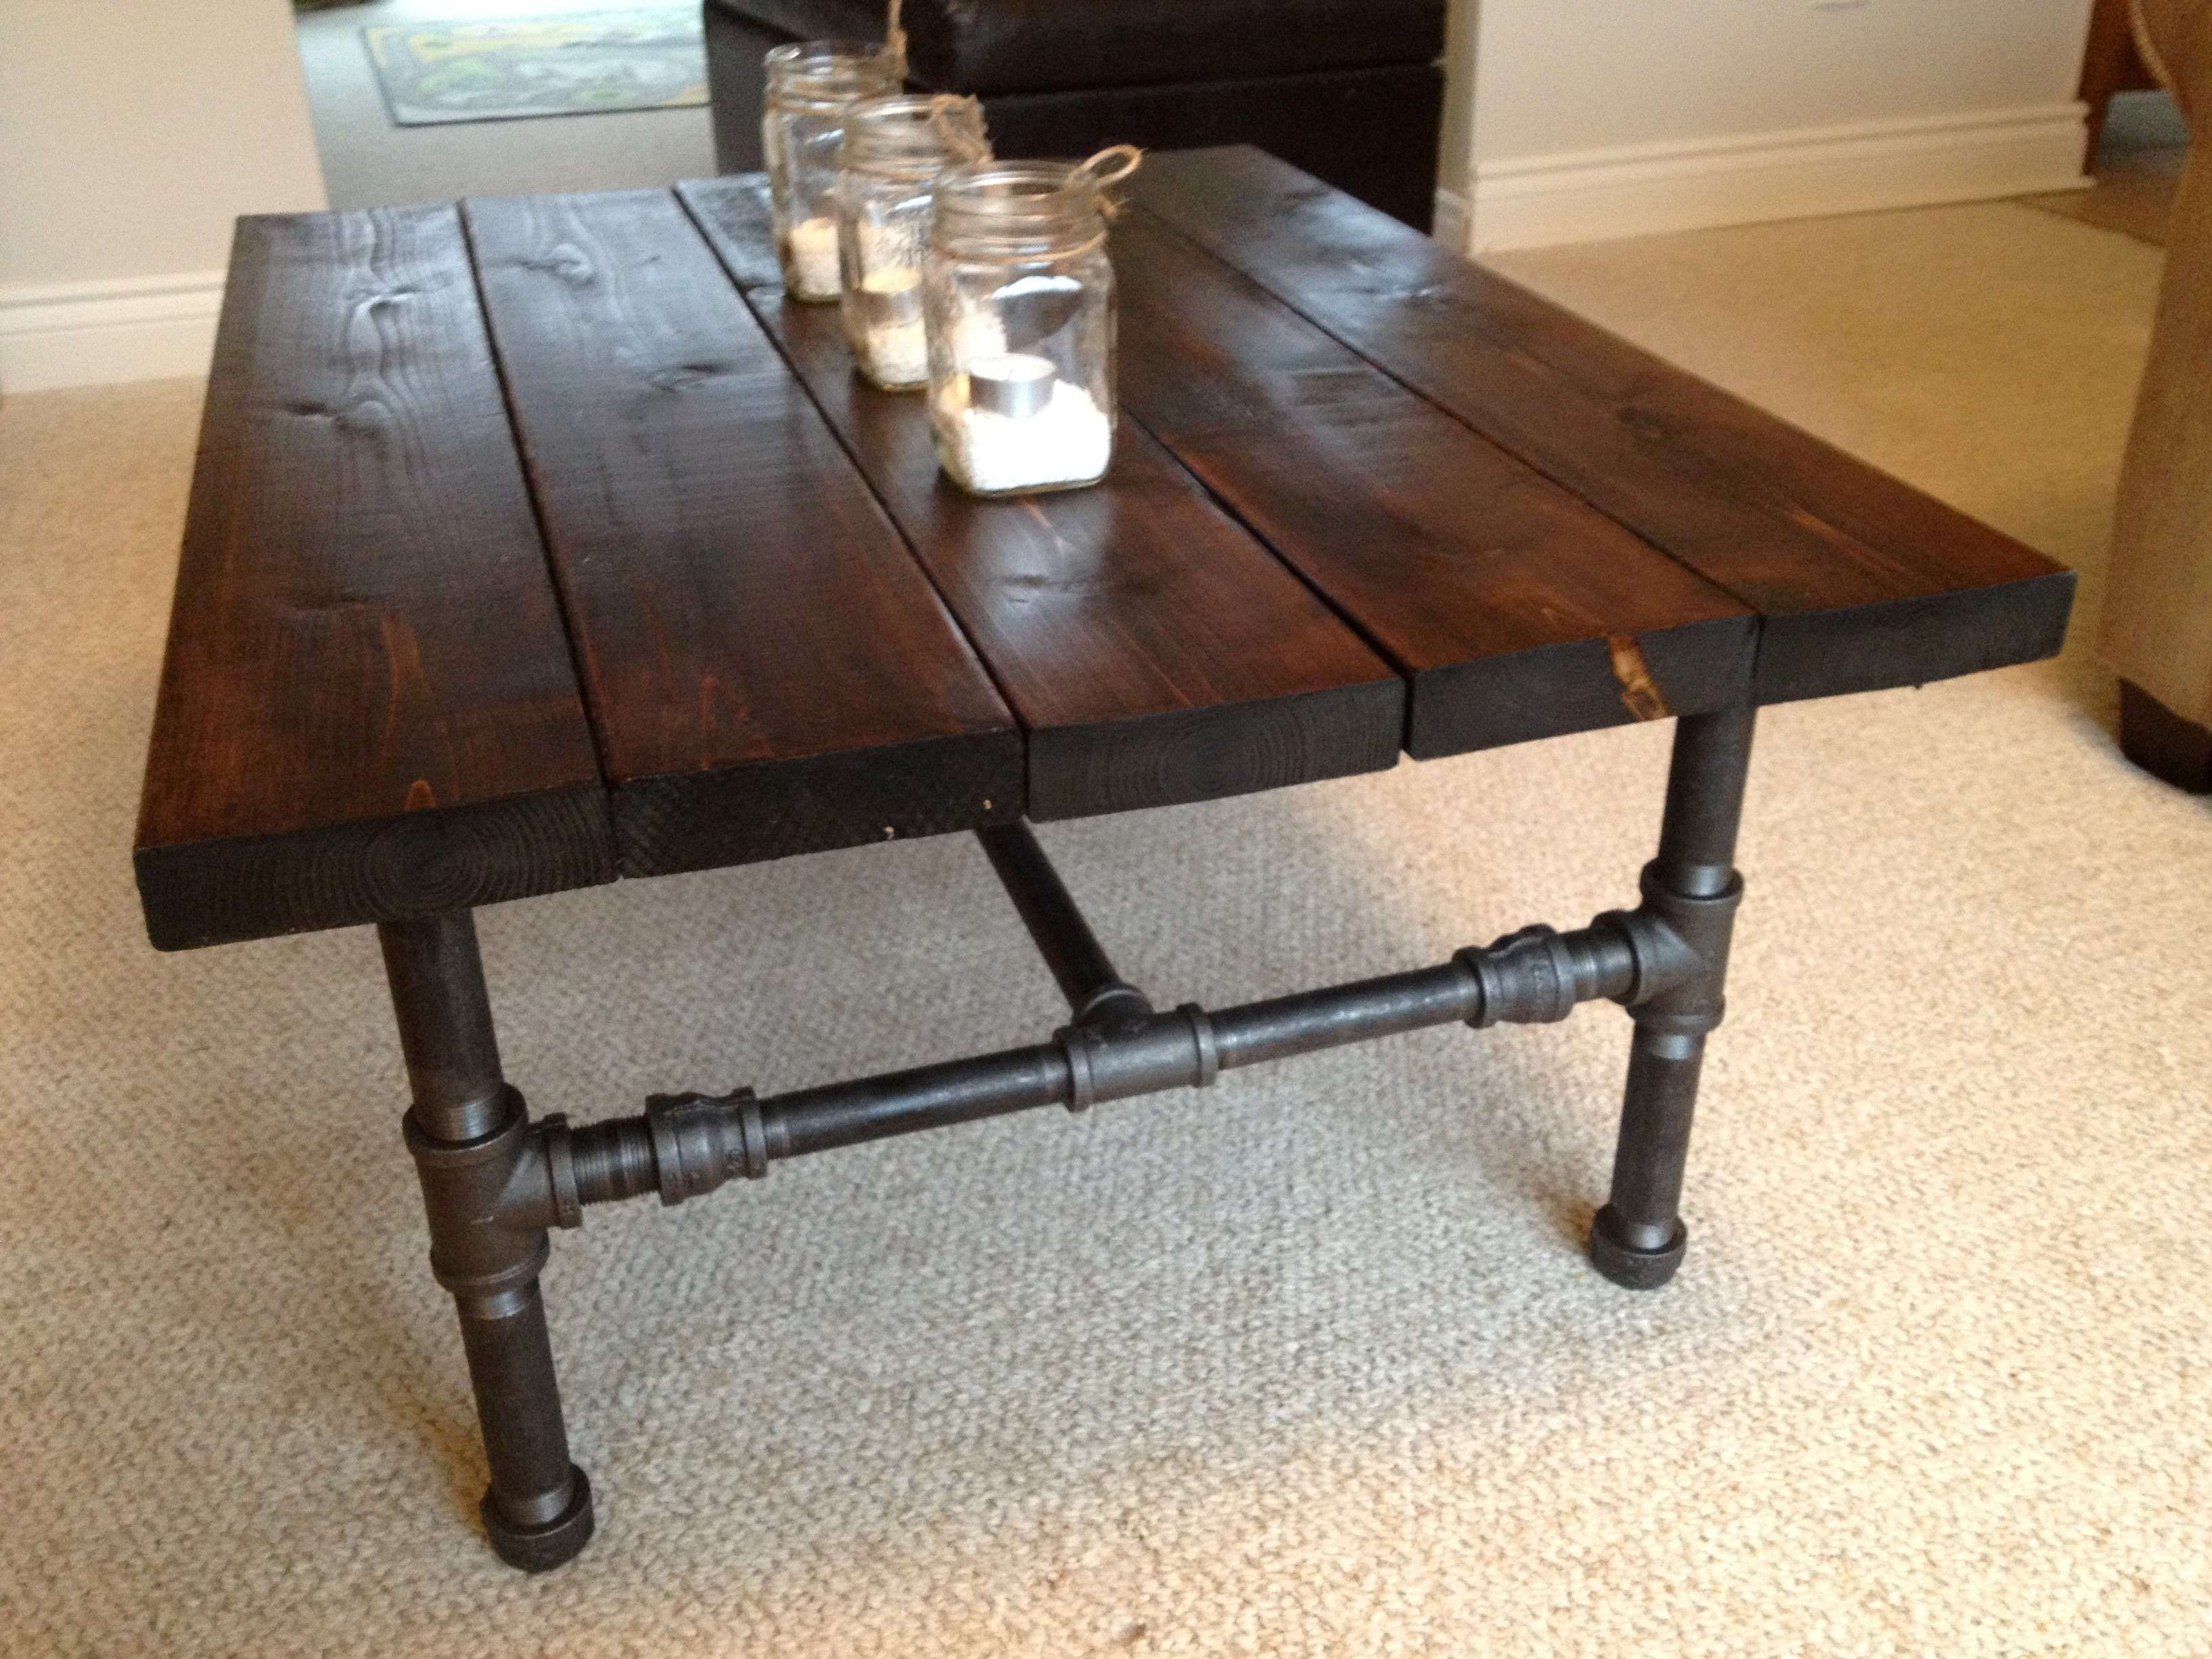 Widely Used Industrial Style Coffee Tables Pertaining To Furniture Industrial Style Coffee Table Ideas Hi Res Wallpaper (View 19 of 20)